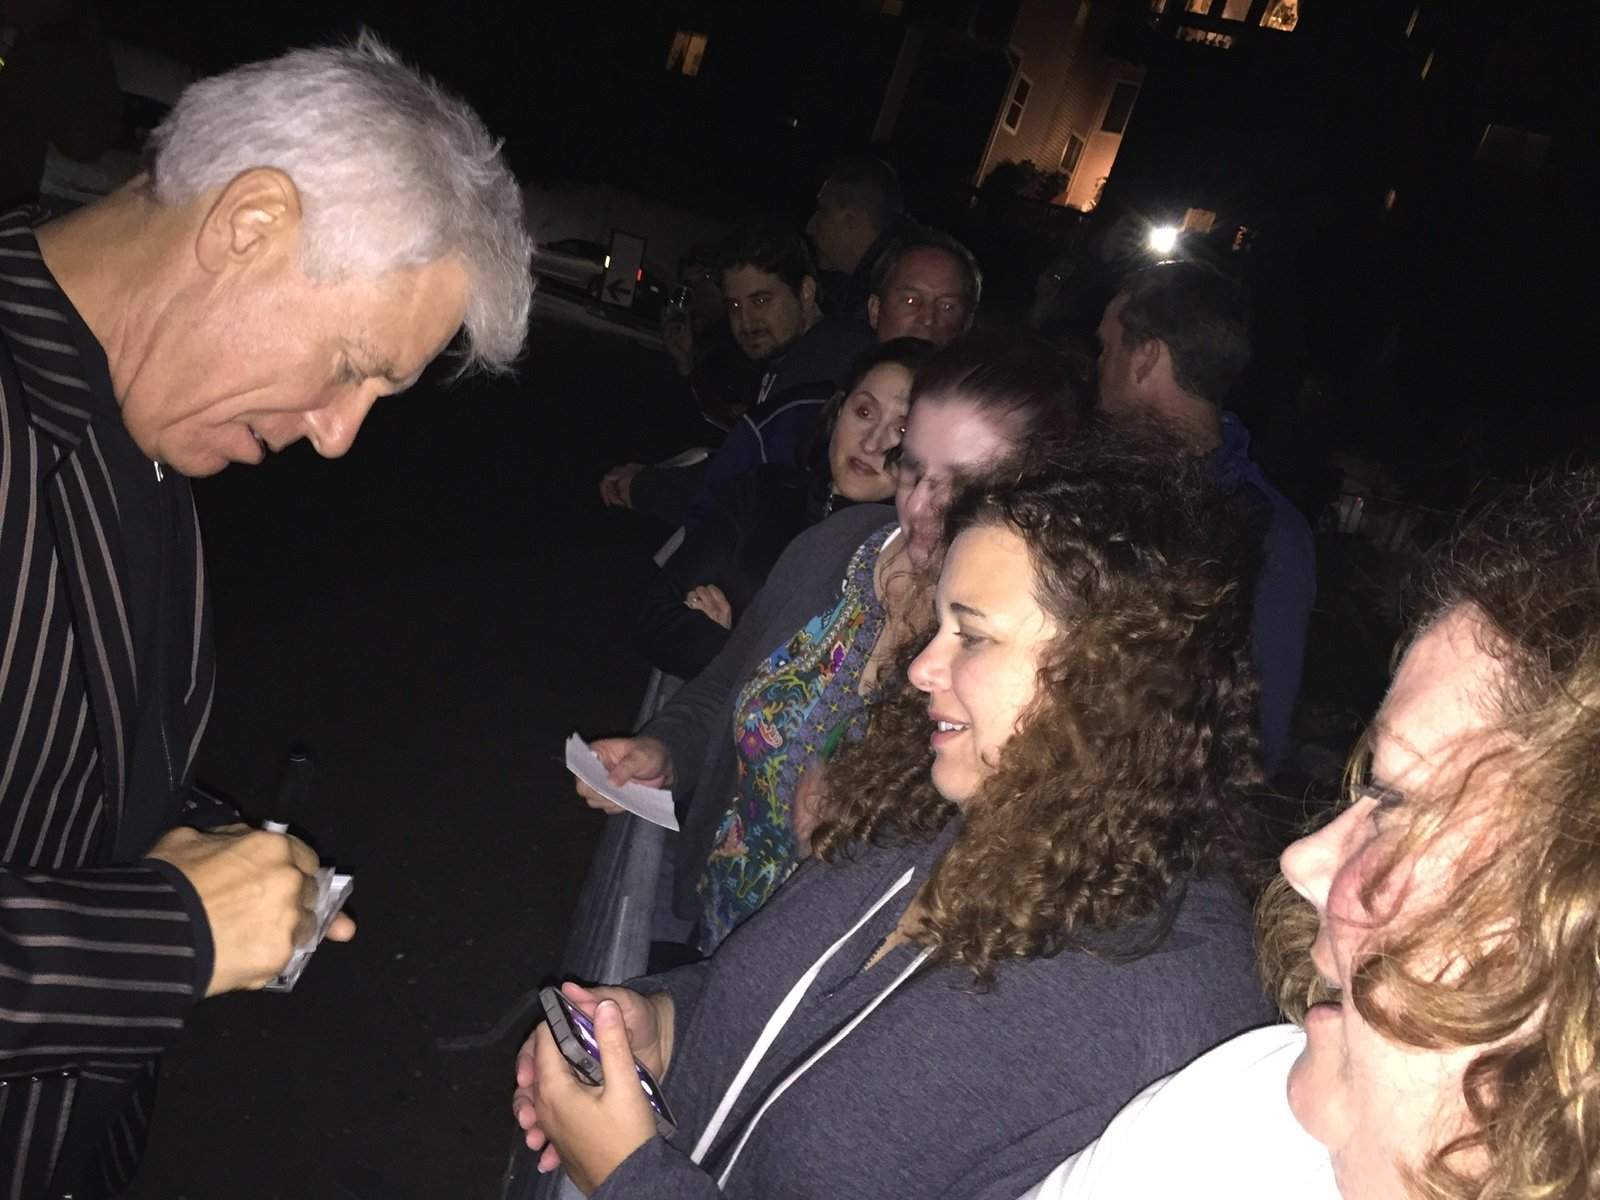 Getting Adam's autograph